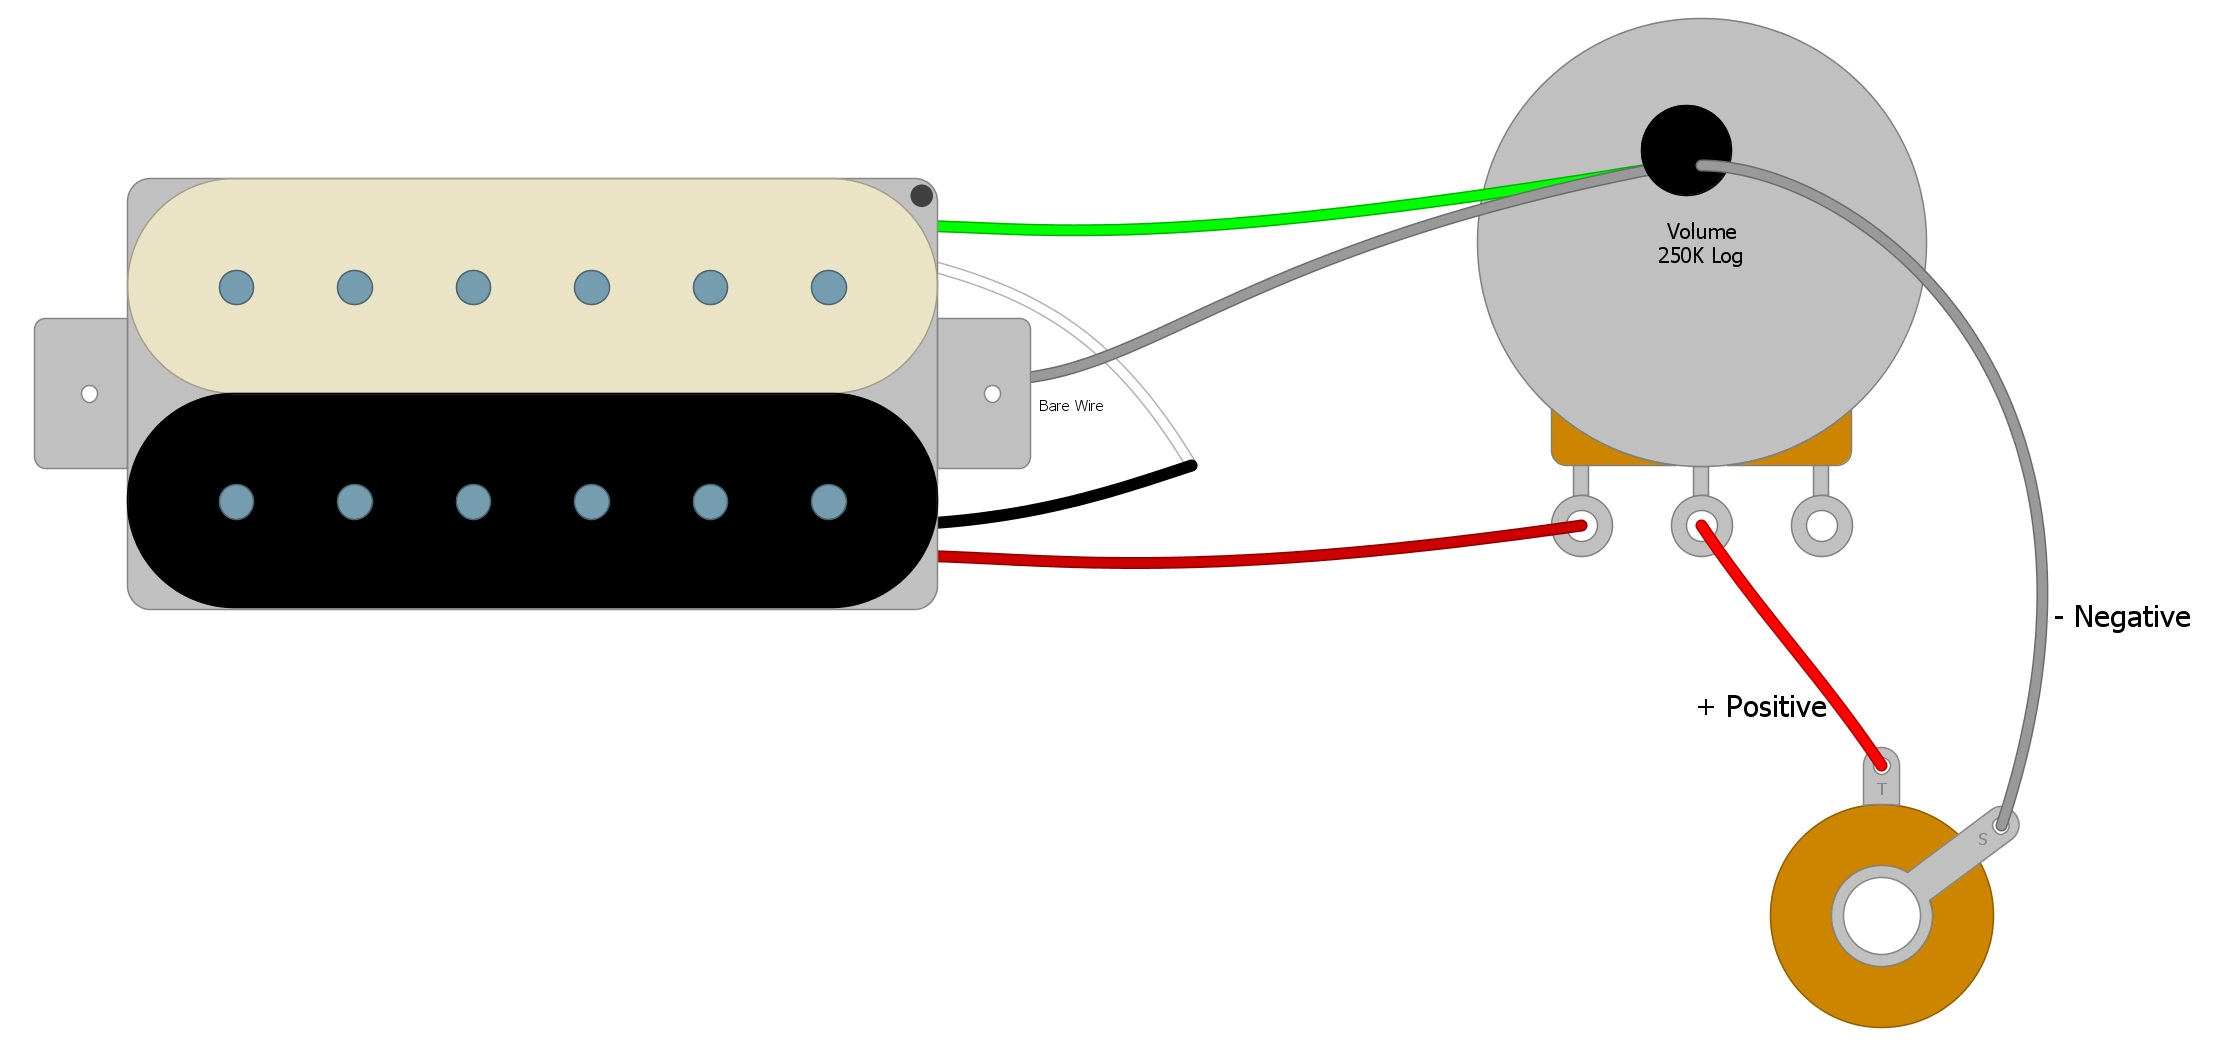 Dimarzio Hss Wiring Diagram from humbuckersoup.com